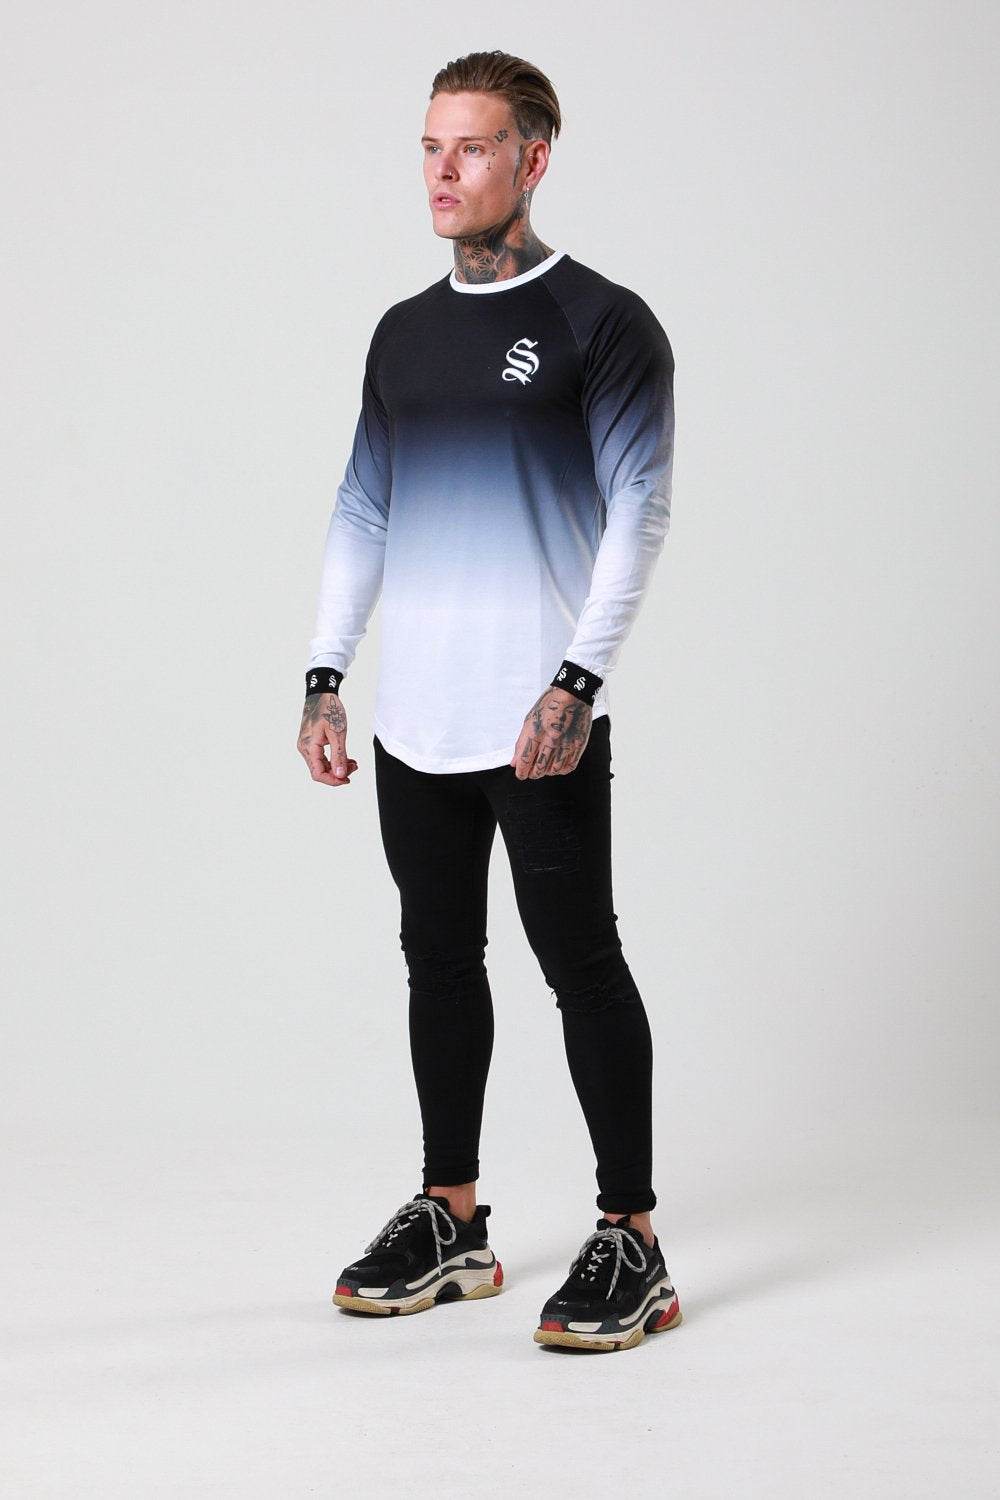 L/S DIP DYE TEE - BLACK/WHITE BY SINNERS ATTIRE - Brit Boss